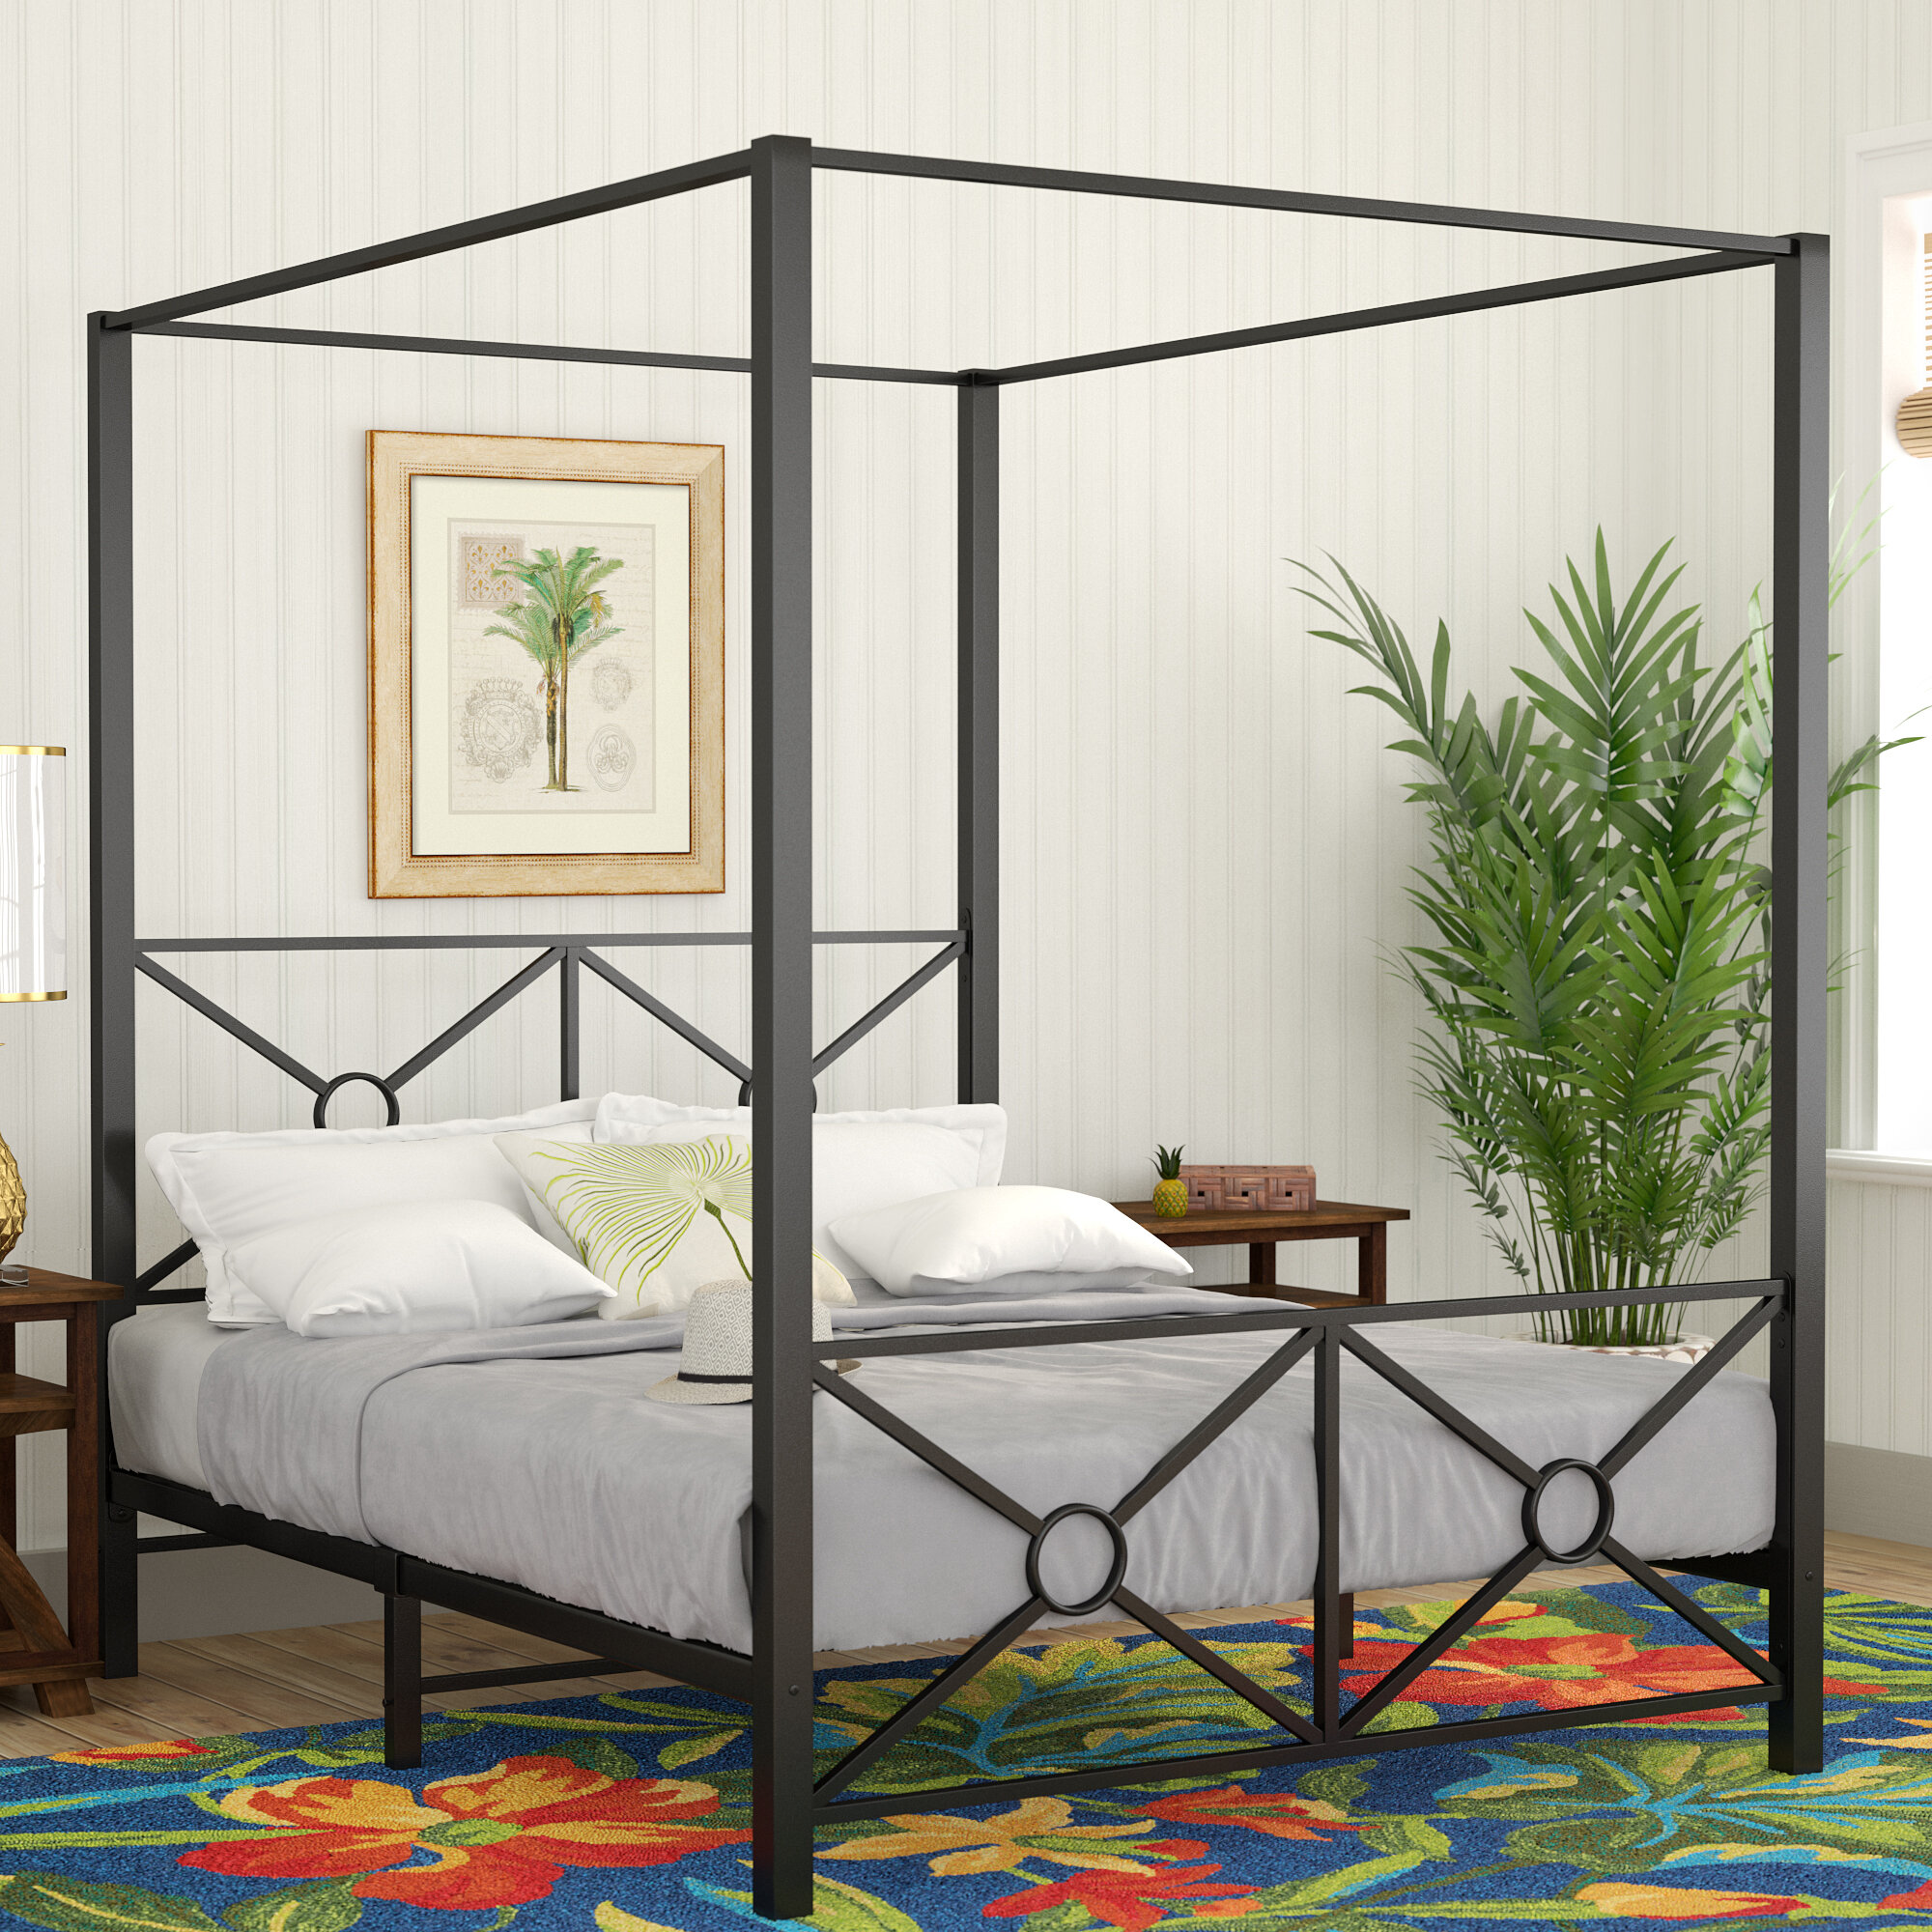 Symeon canopy bed